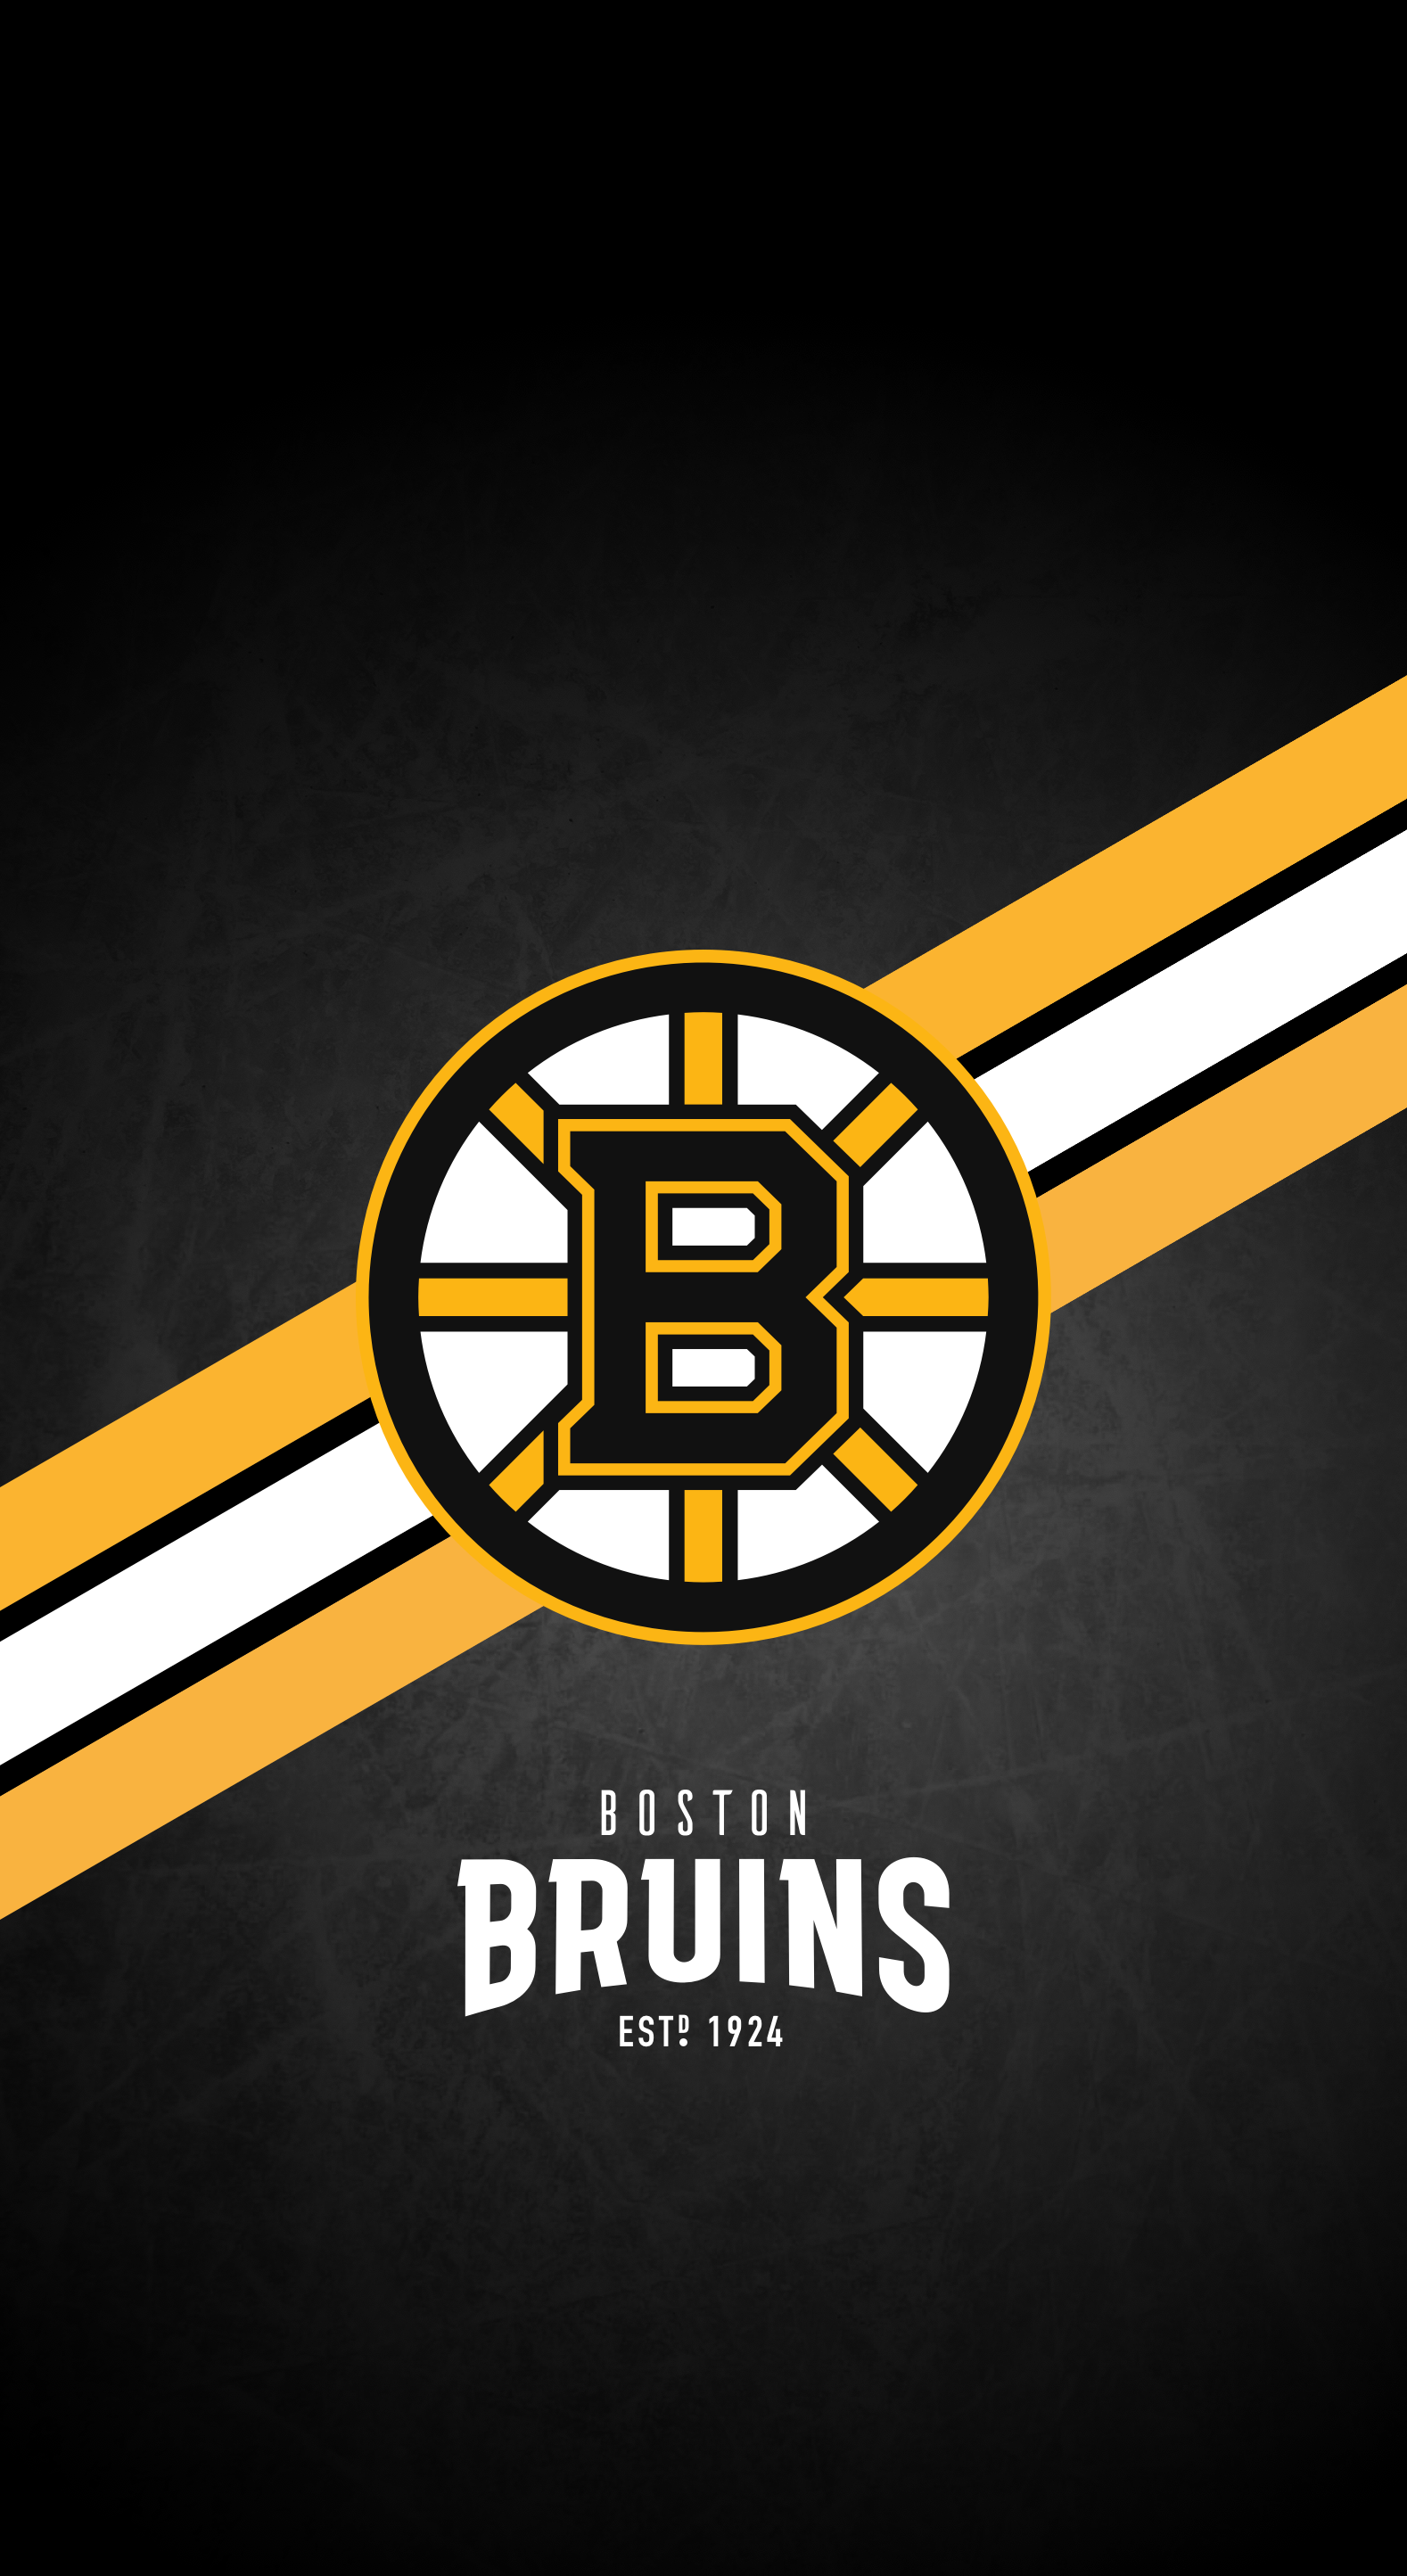 Boston Bruins Nhl Iphone X Xs Xr Lock Screen Wallpaper Boston Bruins Wallpaper Boston Hockey Boston Bruins Logo